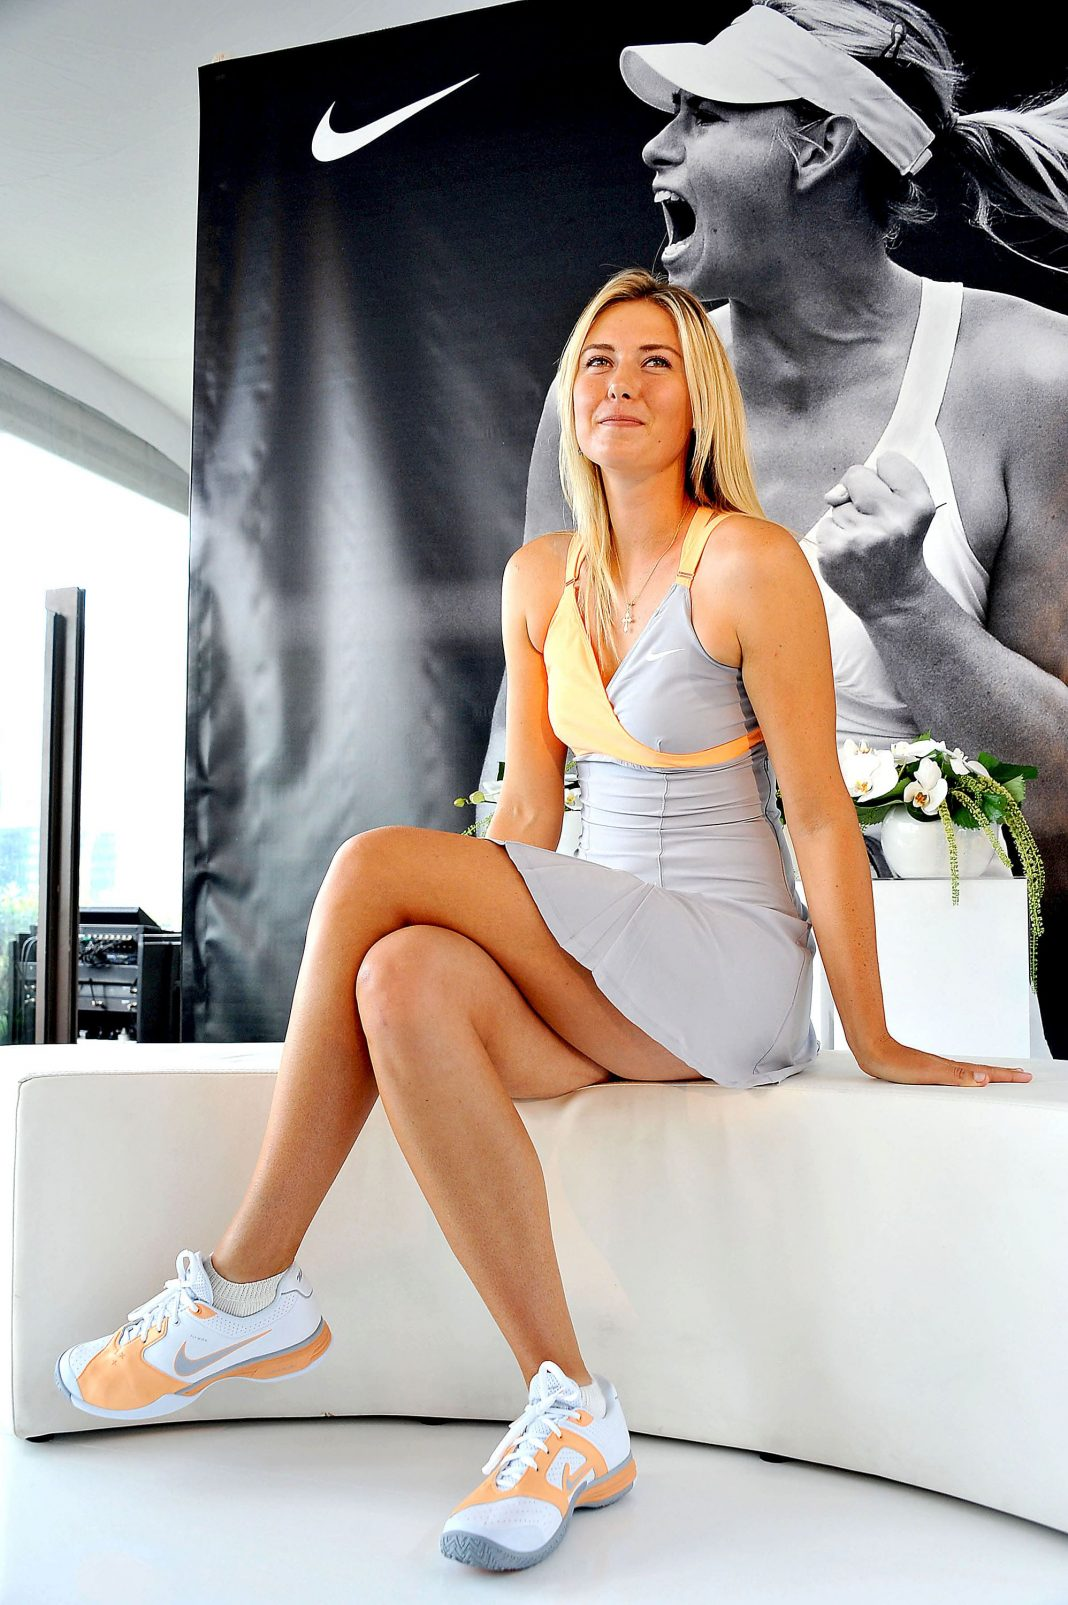 Download best maria sharapova hot and sexy wallpaper wallpapers images free